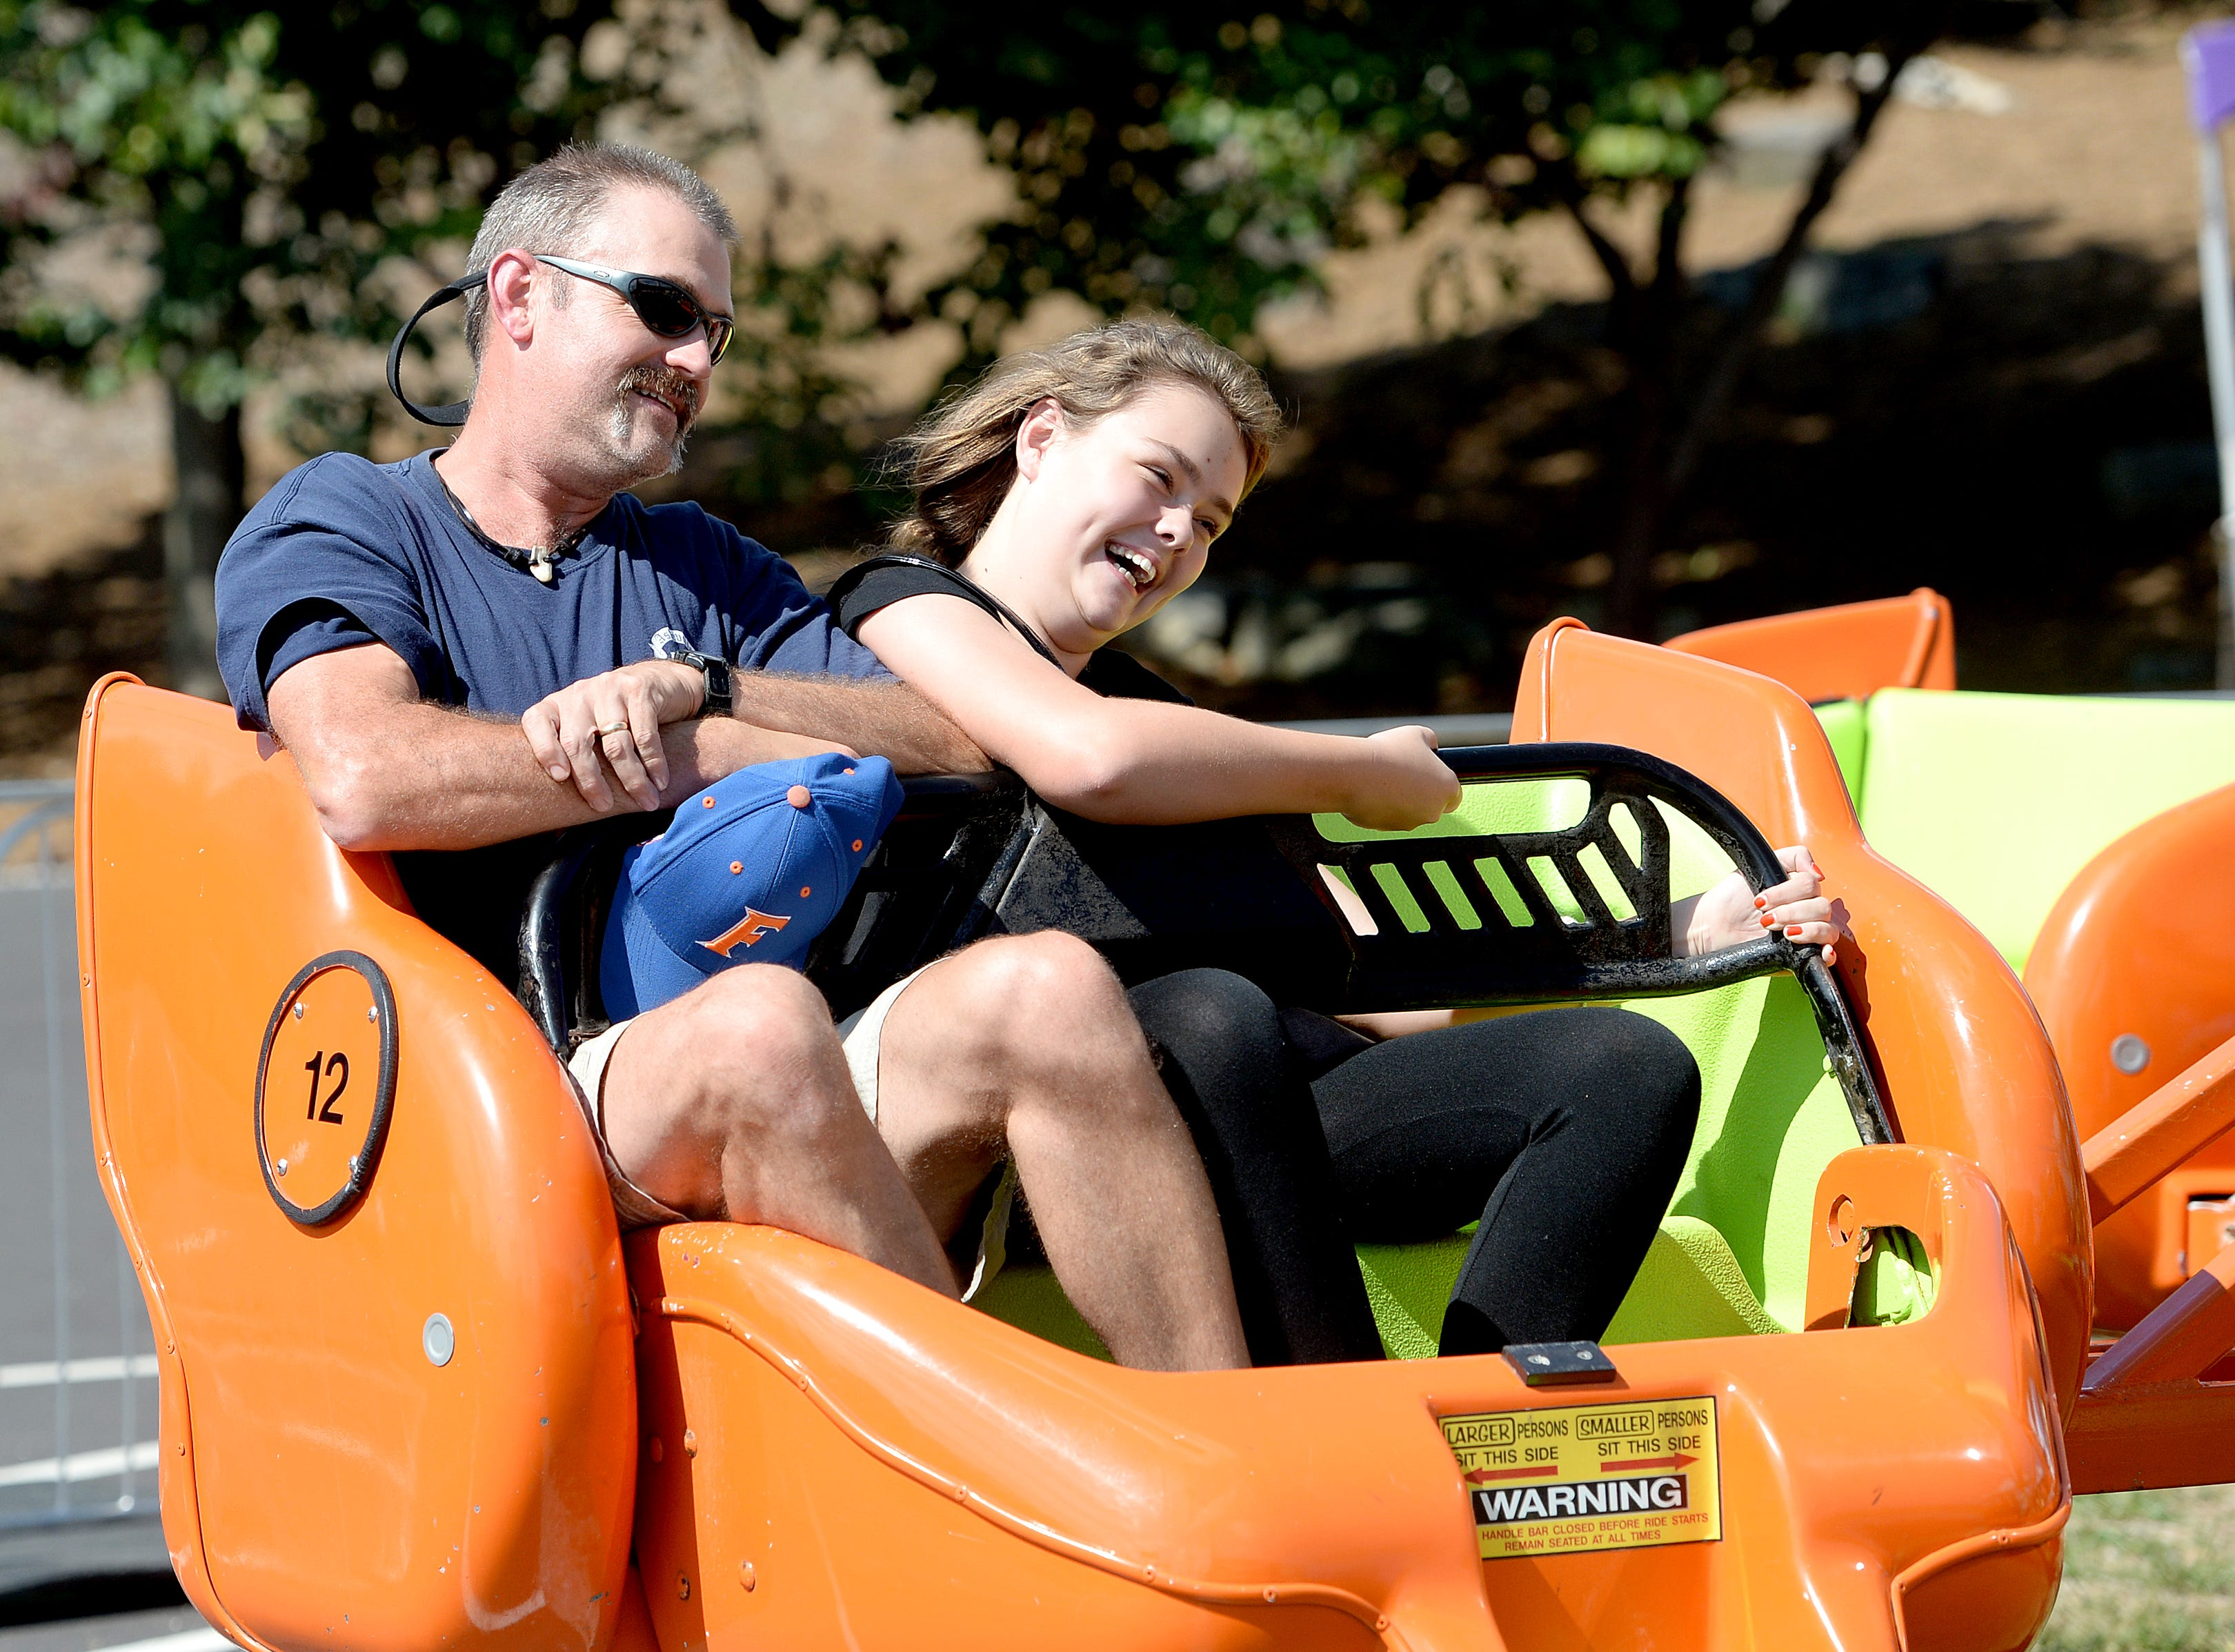 Daren Gillespie and his daughter, Gracie, 13, ride the Mixer during the NC Mountain State Fair at the WNC Agricultural Center on Sept. 7, 2018. Friday was Gracie's birthday.